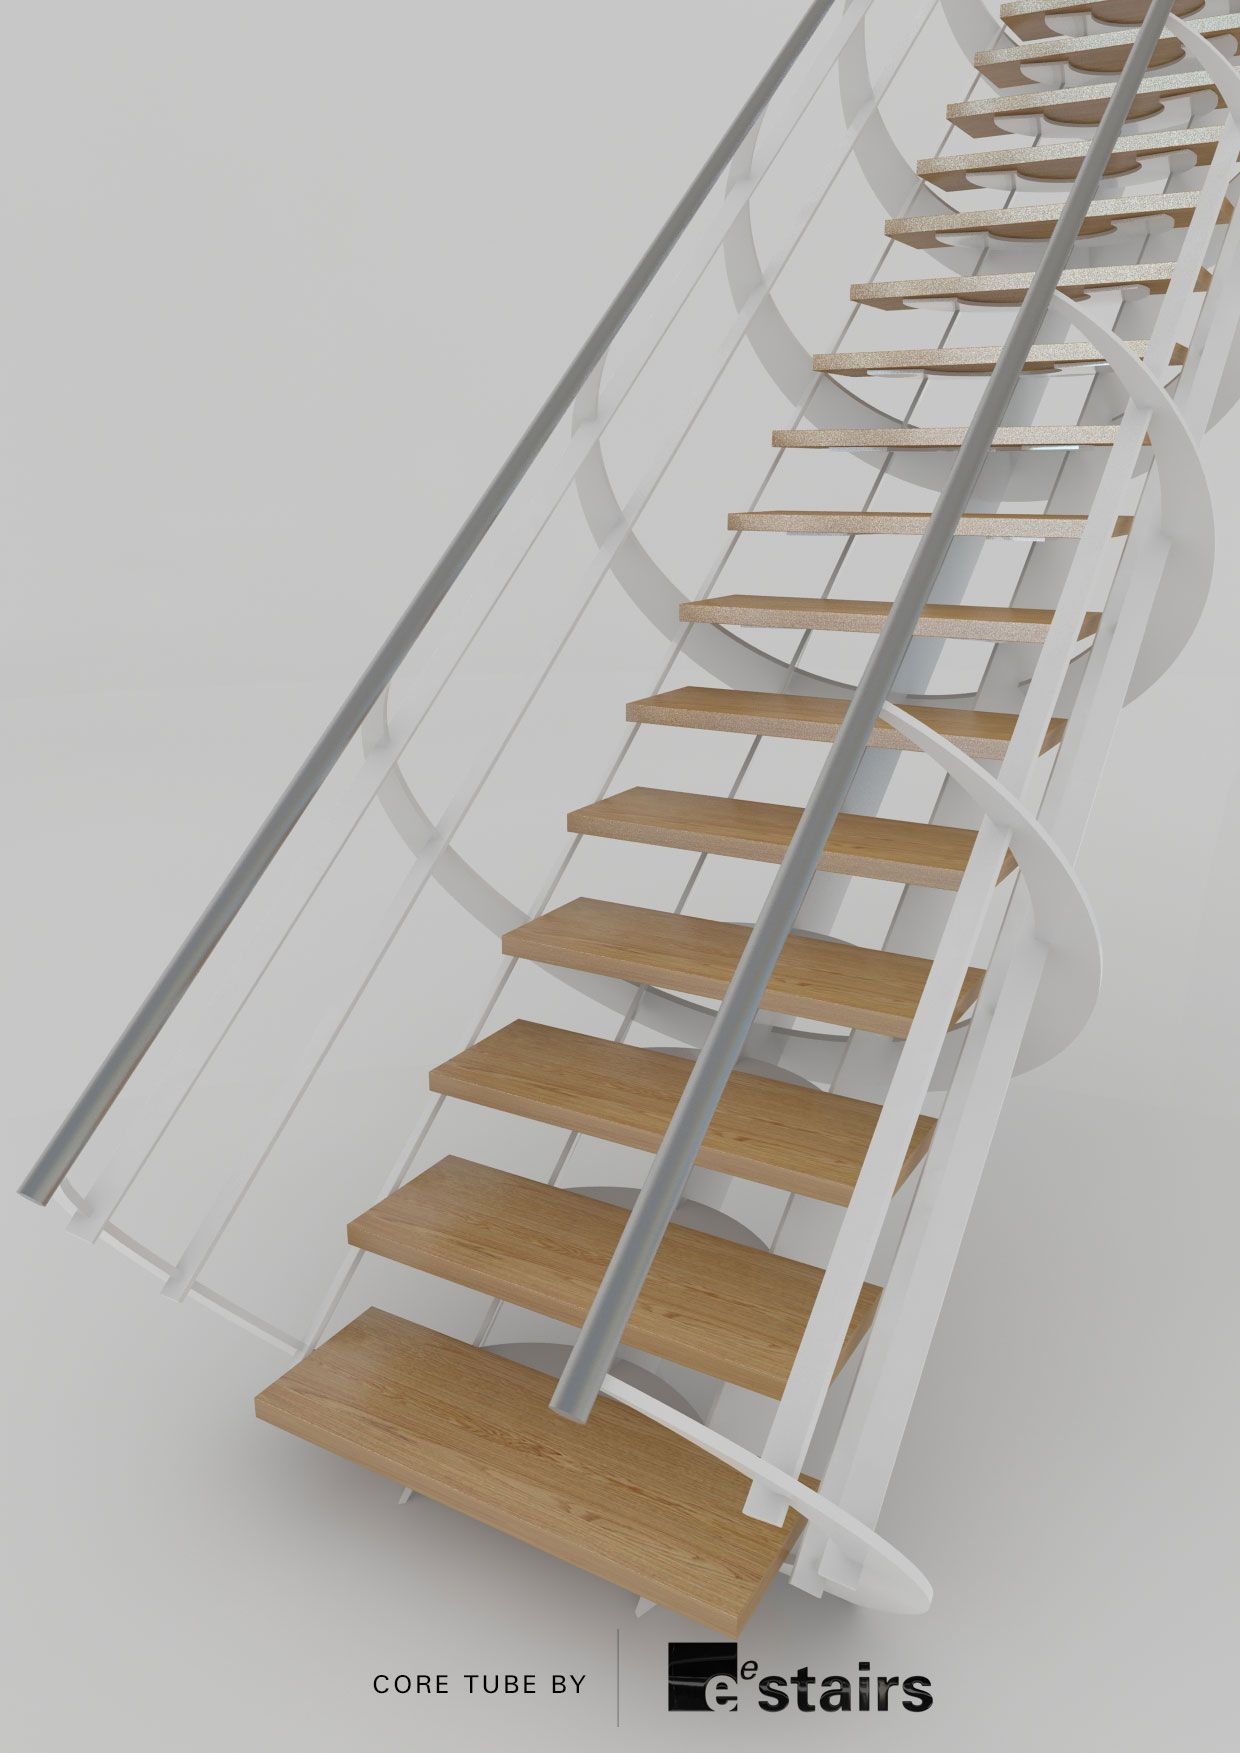 Best Tubular Eedesign Designimages Idées Staircase Design 400 x 300